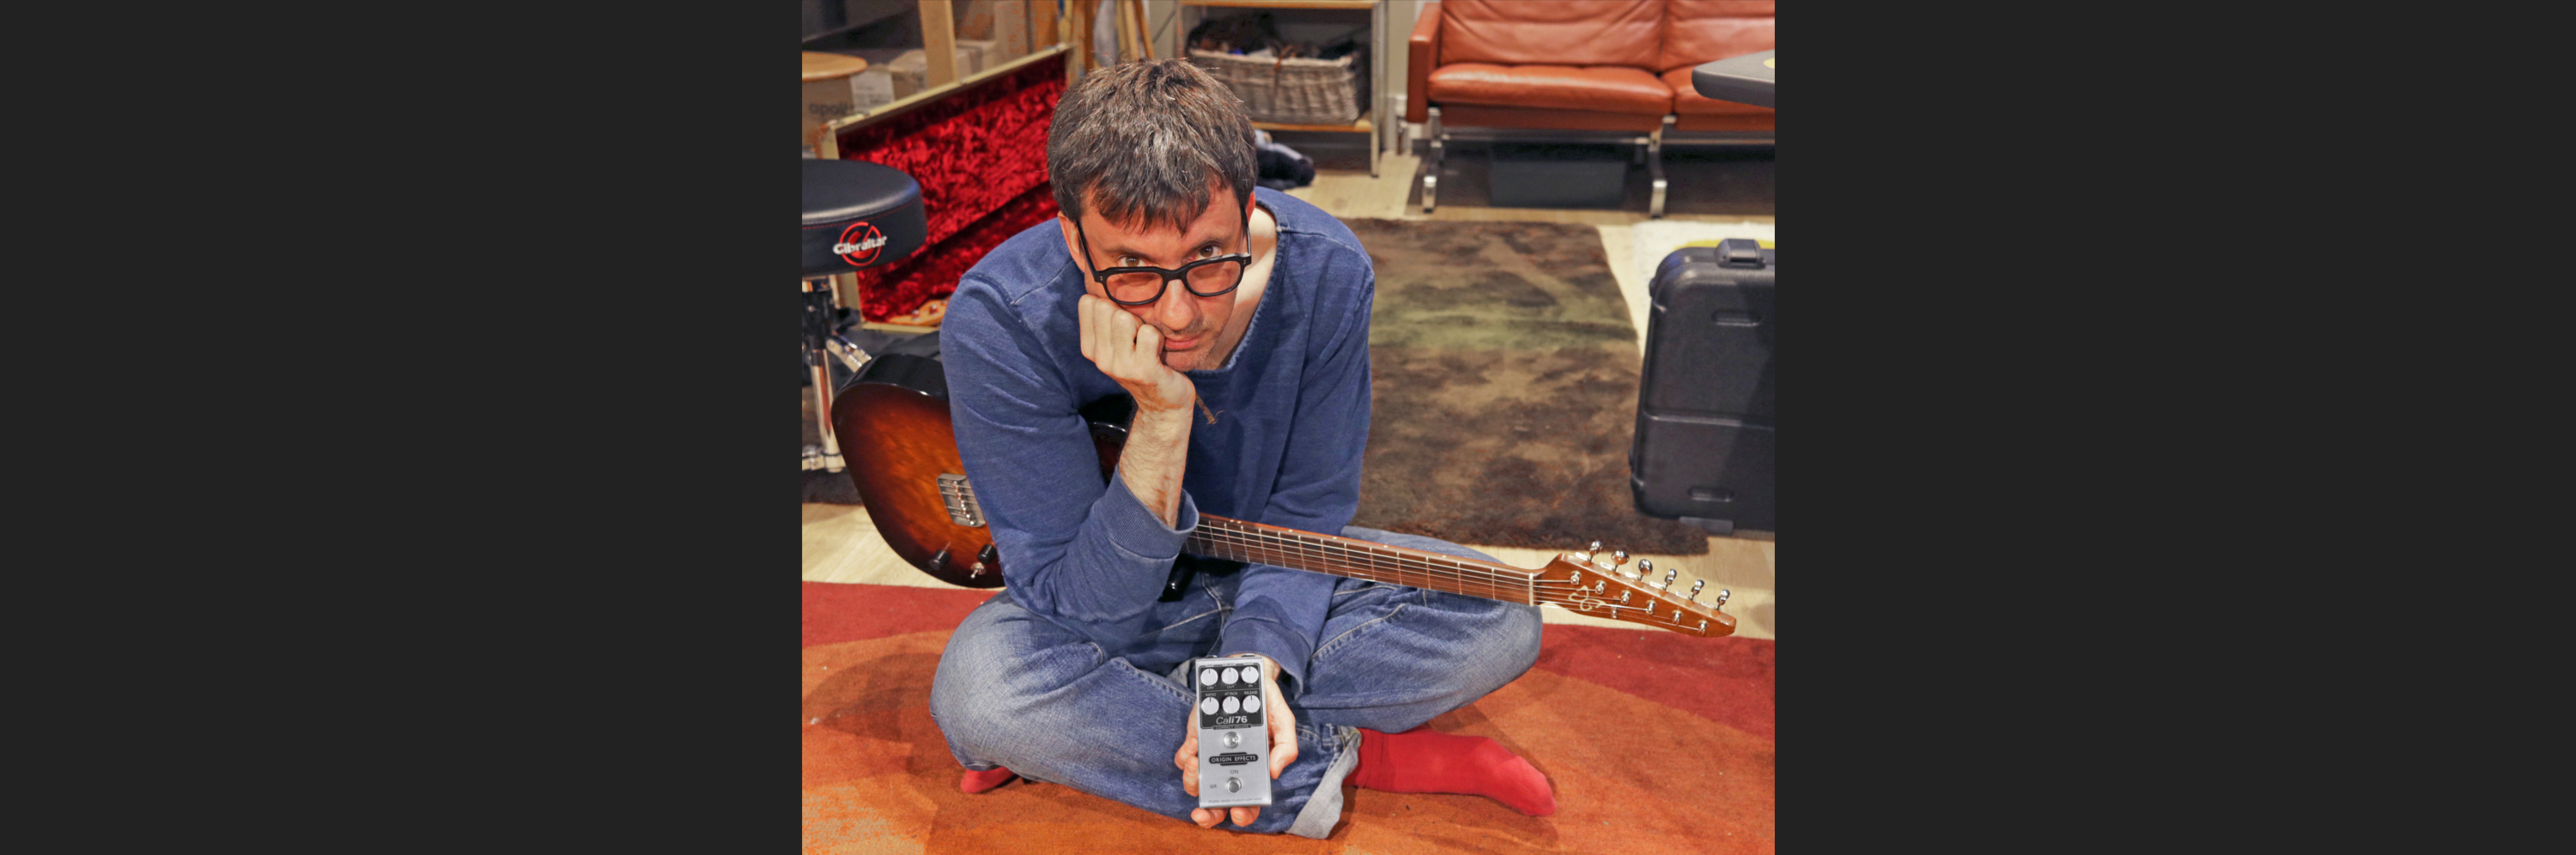 Graham Coxon Blur Origin Effects Cali76 Compact Deluxe Compressor Pedal Studio Quality Gray Guitars Telecaster Boutique